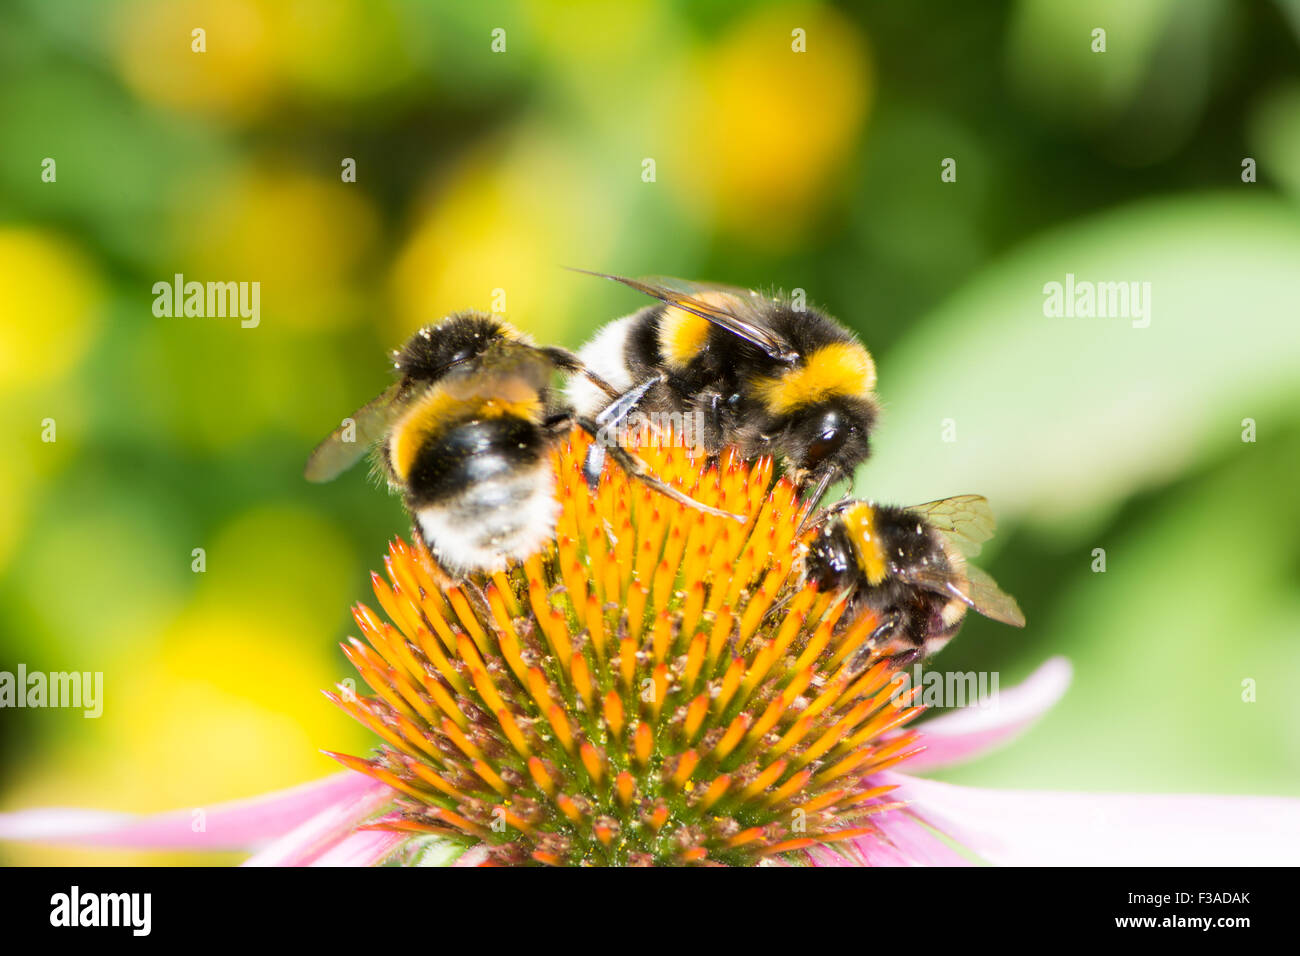 Three bumblebees on the blossom of an echinacea flower Stock Photo